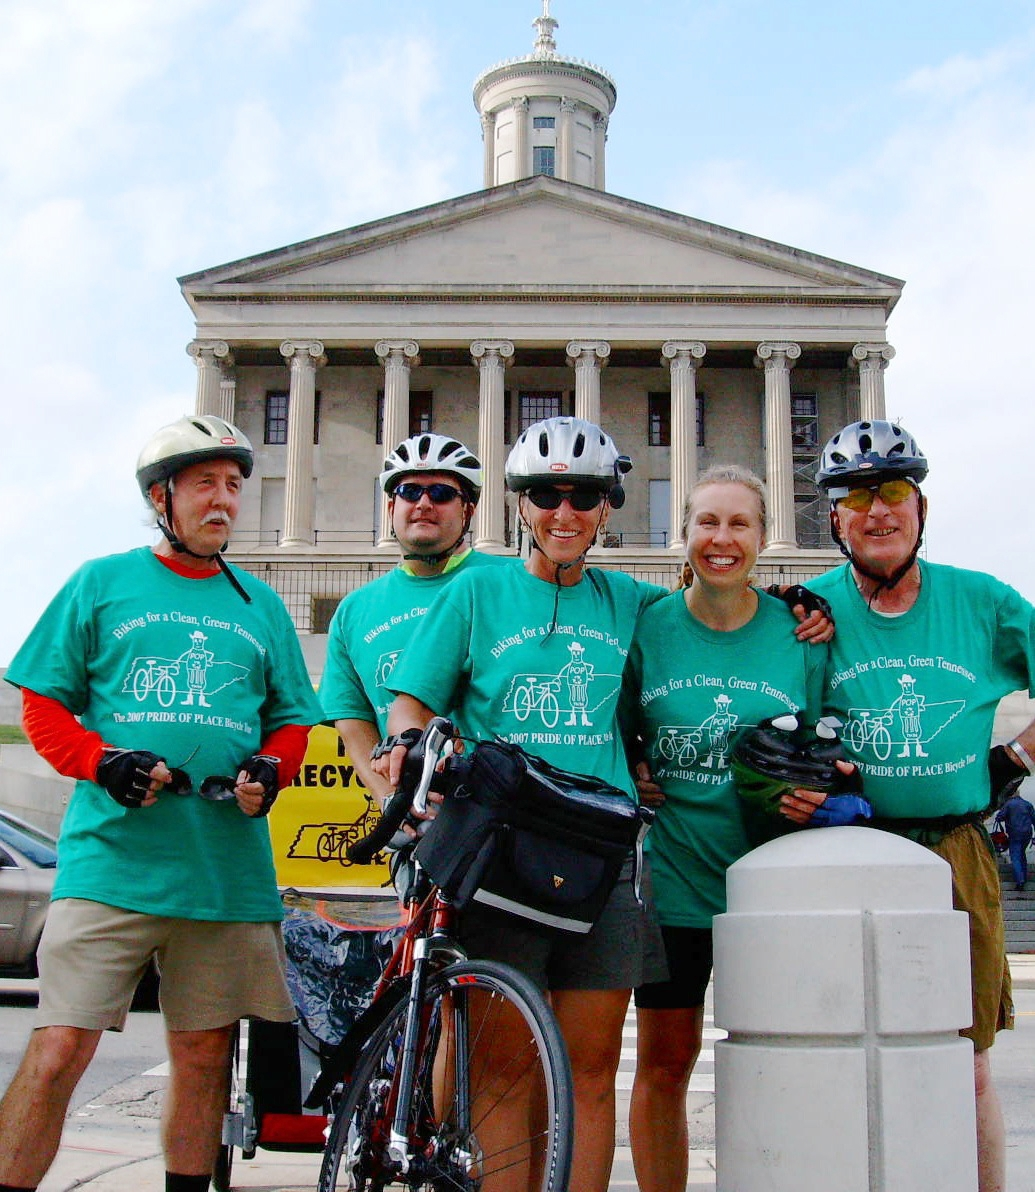 Supporters of a Tennessee beverage container deposit gathr in front of the State Capitol in Nashville during the 2007 statewide Cycling for Recycling bottle-bill bicycle tour.  From left: Richard Connors, Richard Cochran, Marge Davis, Kim Sparks and David Irvine.